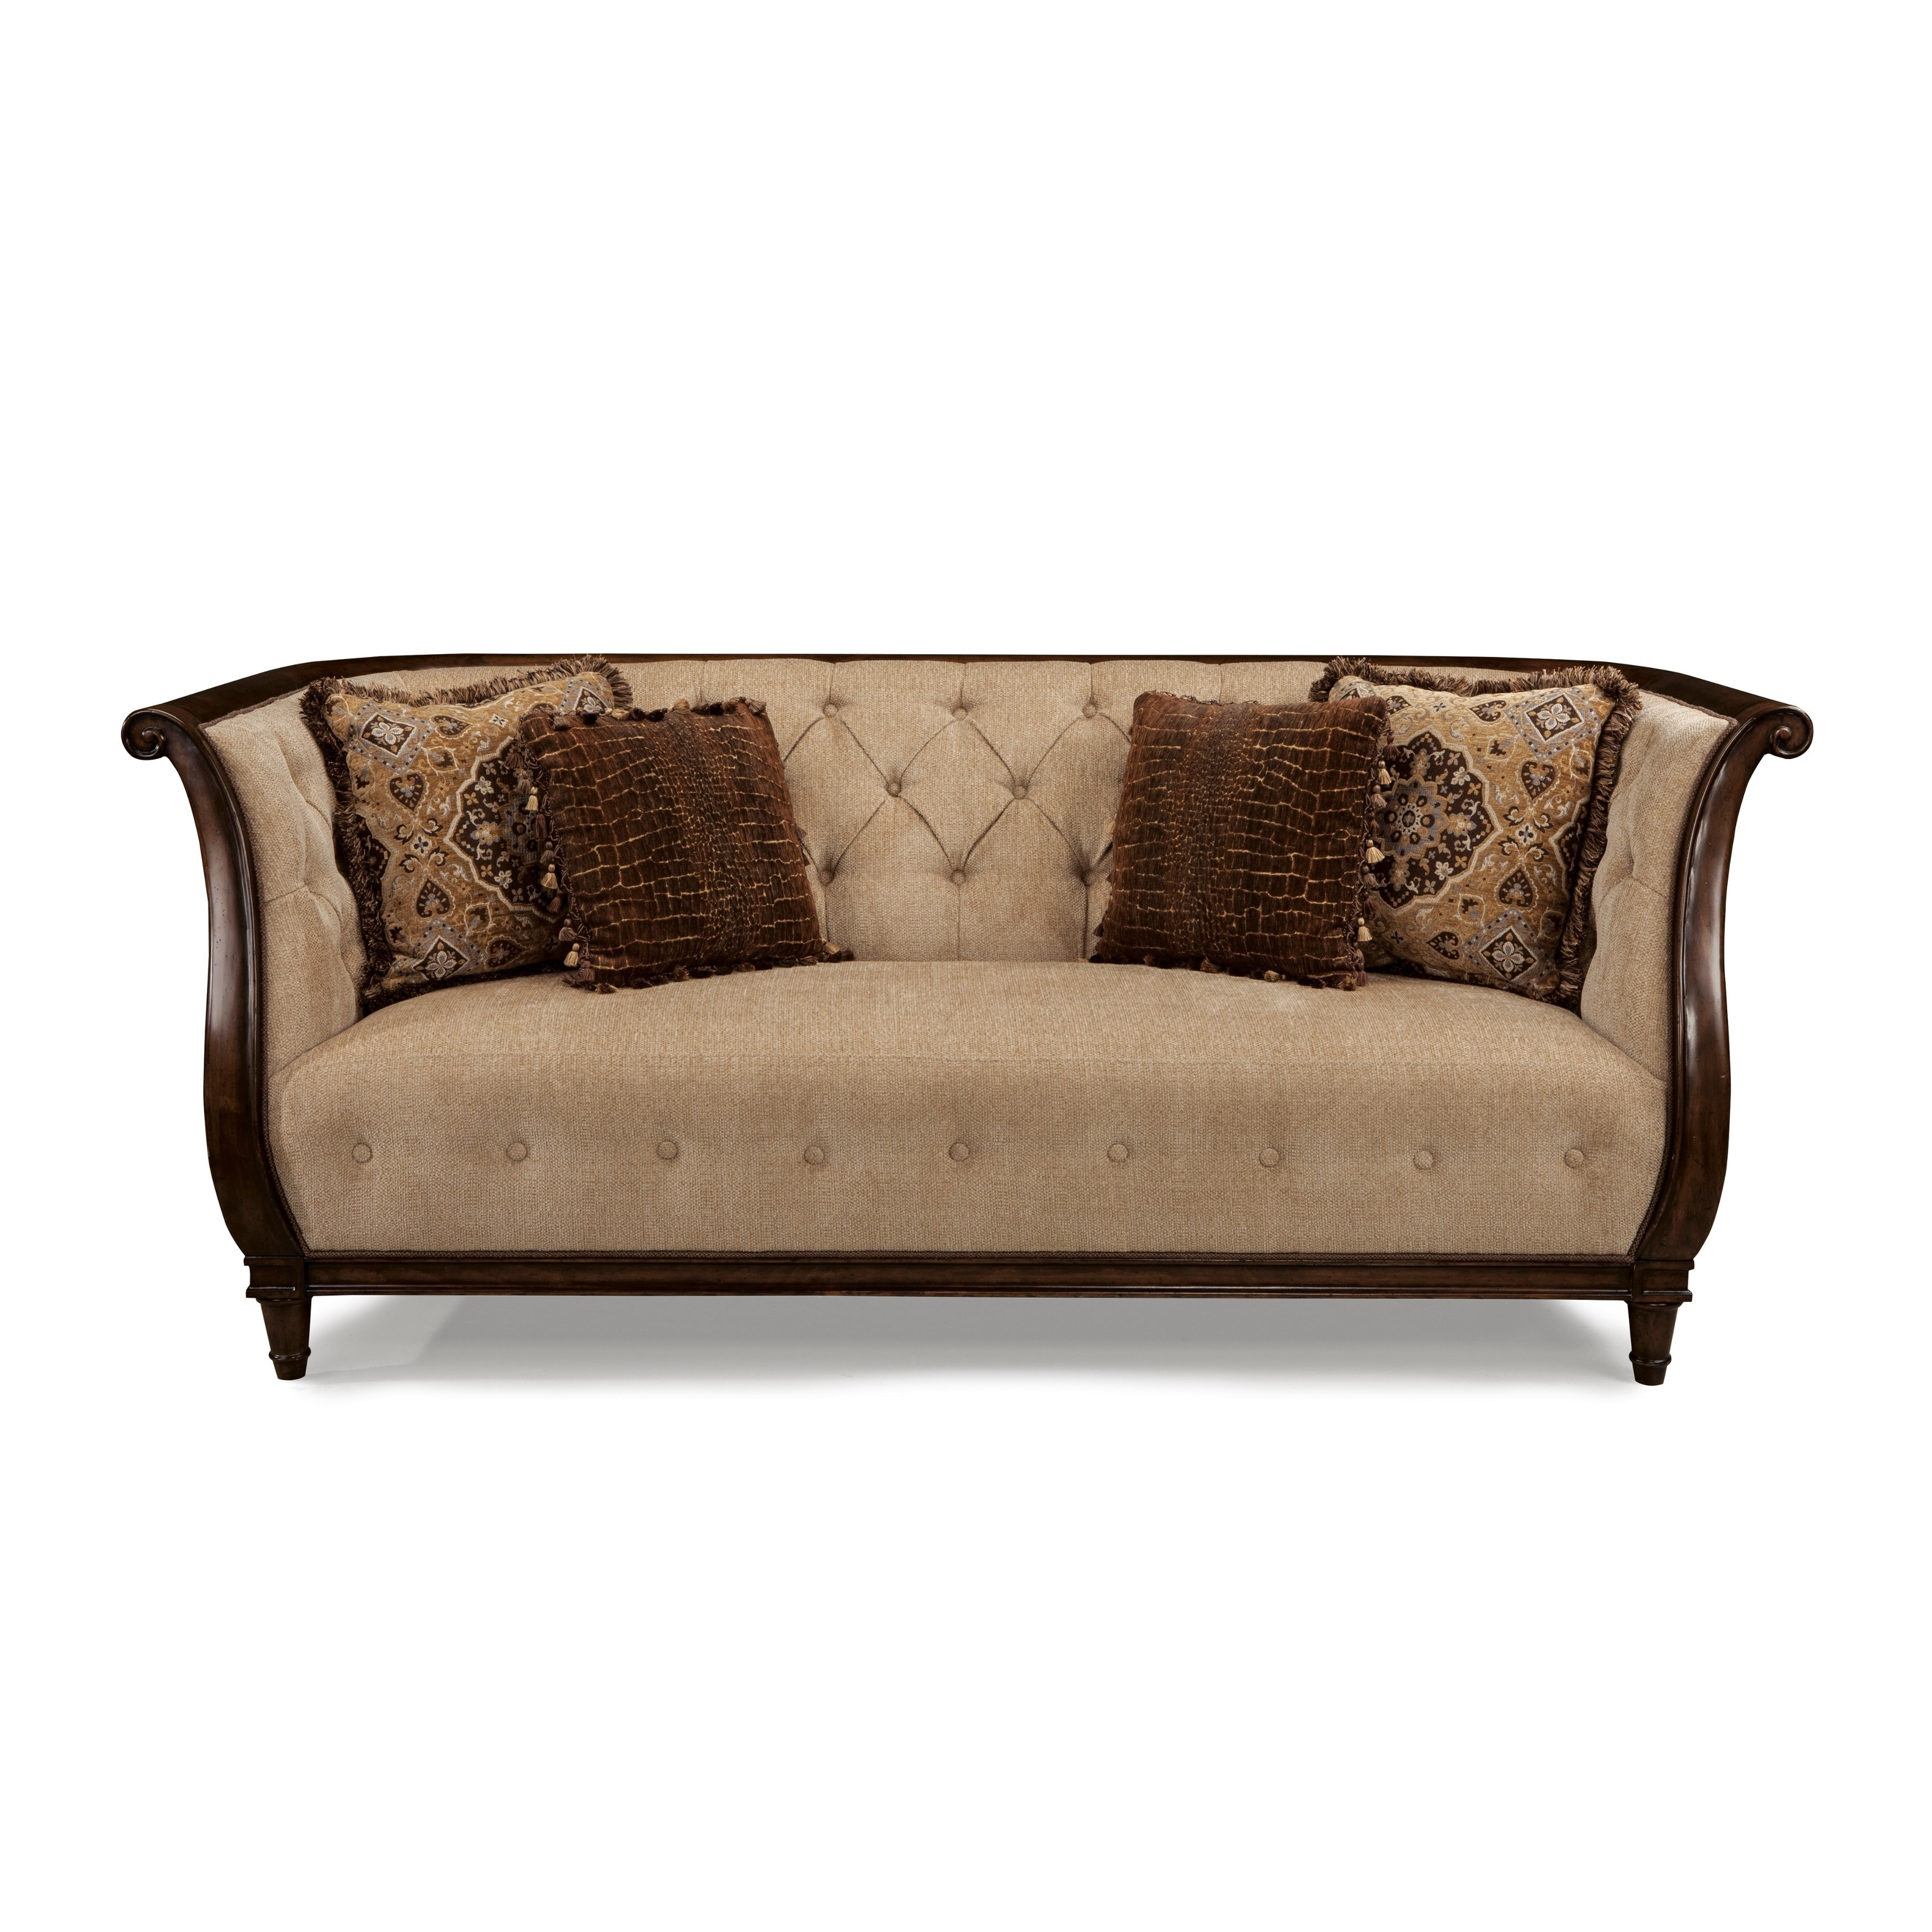 Brilliant A R T Furniture Ava Adele Tufted Back Sofa Ncnpc Chair Design For Home Ncnpcorg